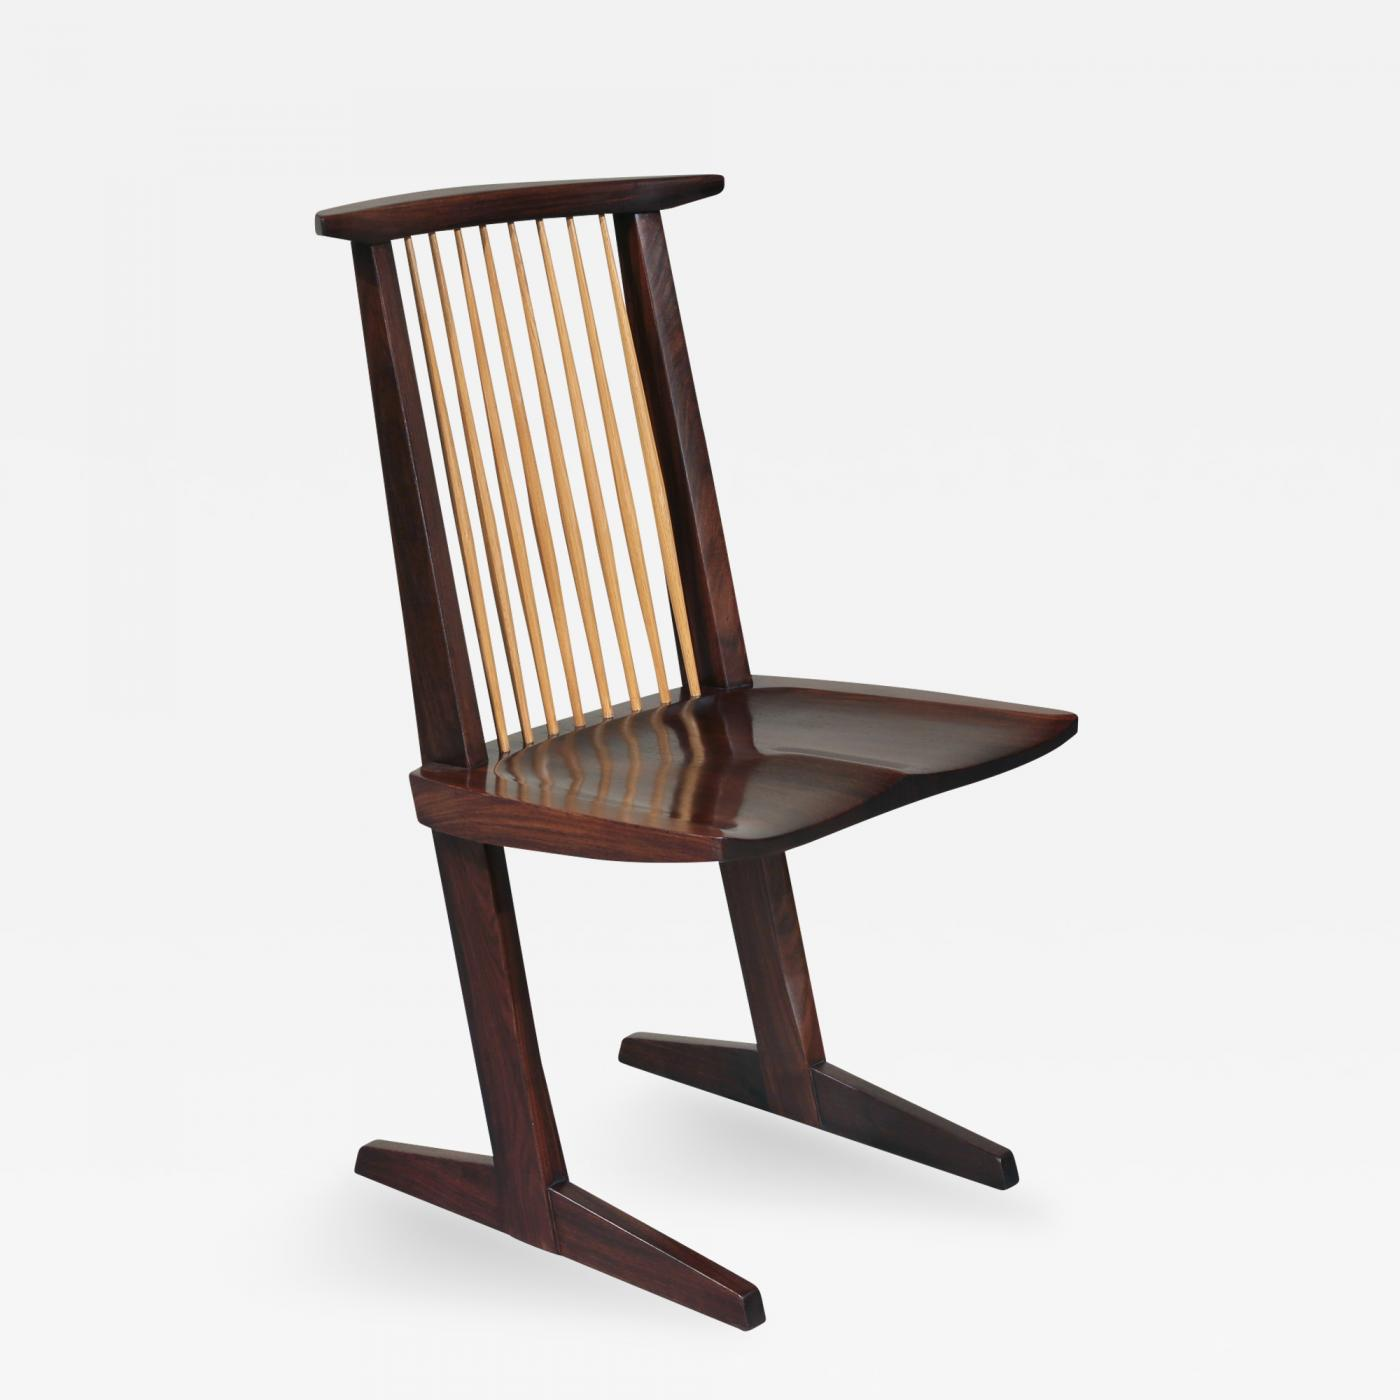 About A Chair 12 Side Chair.George Nakashima 12 Extremely Rare East Indian Rosewood Conoid Dining Chairs 1971 2